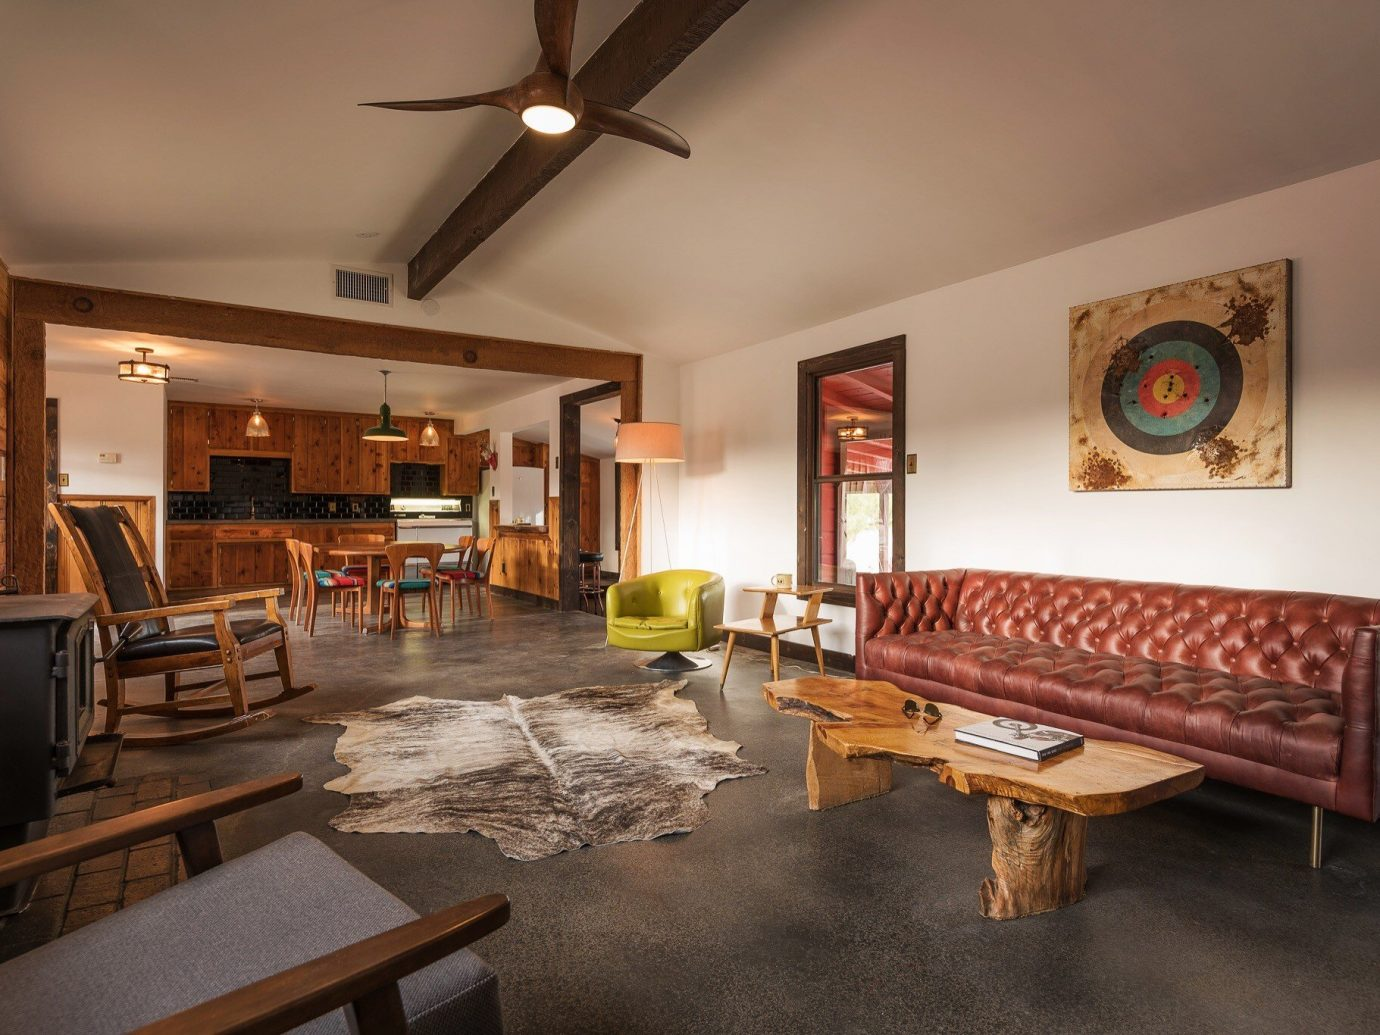 Boutique Hotels Fall Travel Hotels Outdoors + Adventure indoor wall ceiling floor room Living property living room interior design real estate furniture table estate apartment flooring loft area wood several